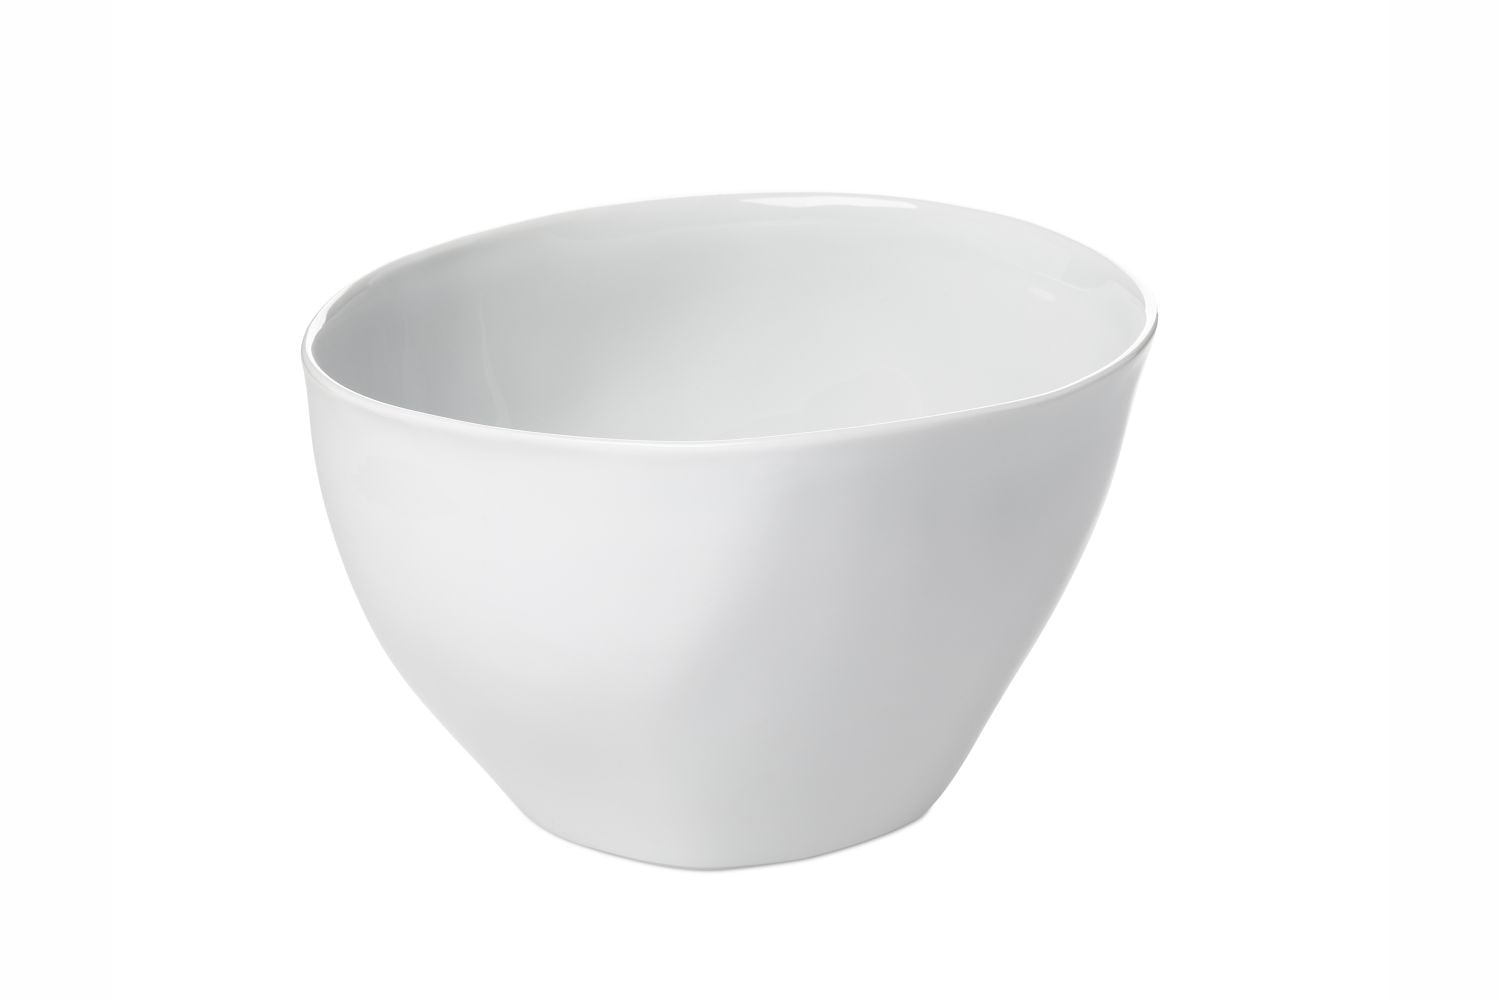 Capacious Famished Bowl White by Tse & Tse